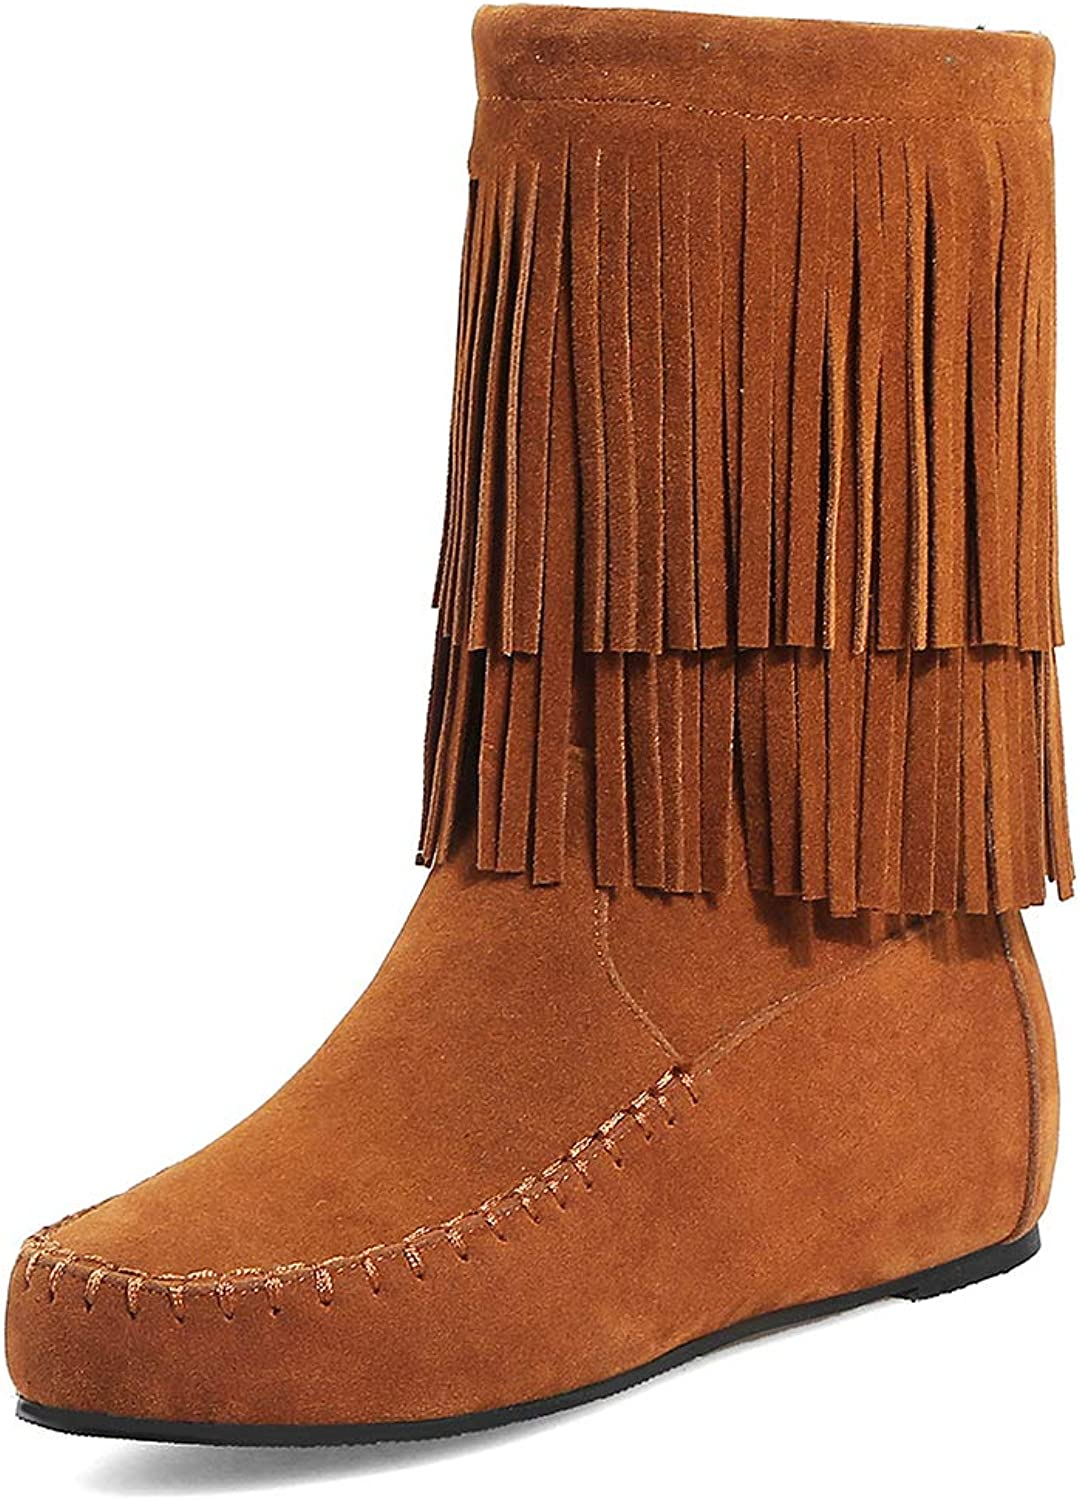 TWGDH Bohemian Ankle Boots Women's Flat Booties Suede Fringed Winter Snow Boots shoes